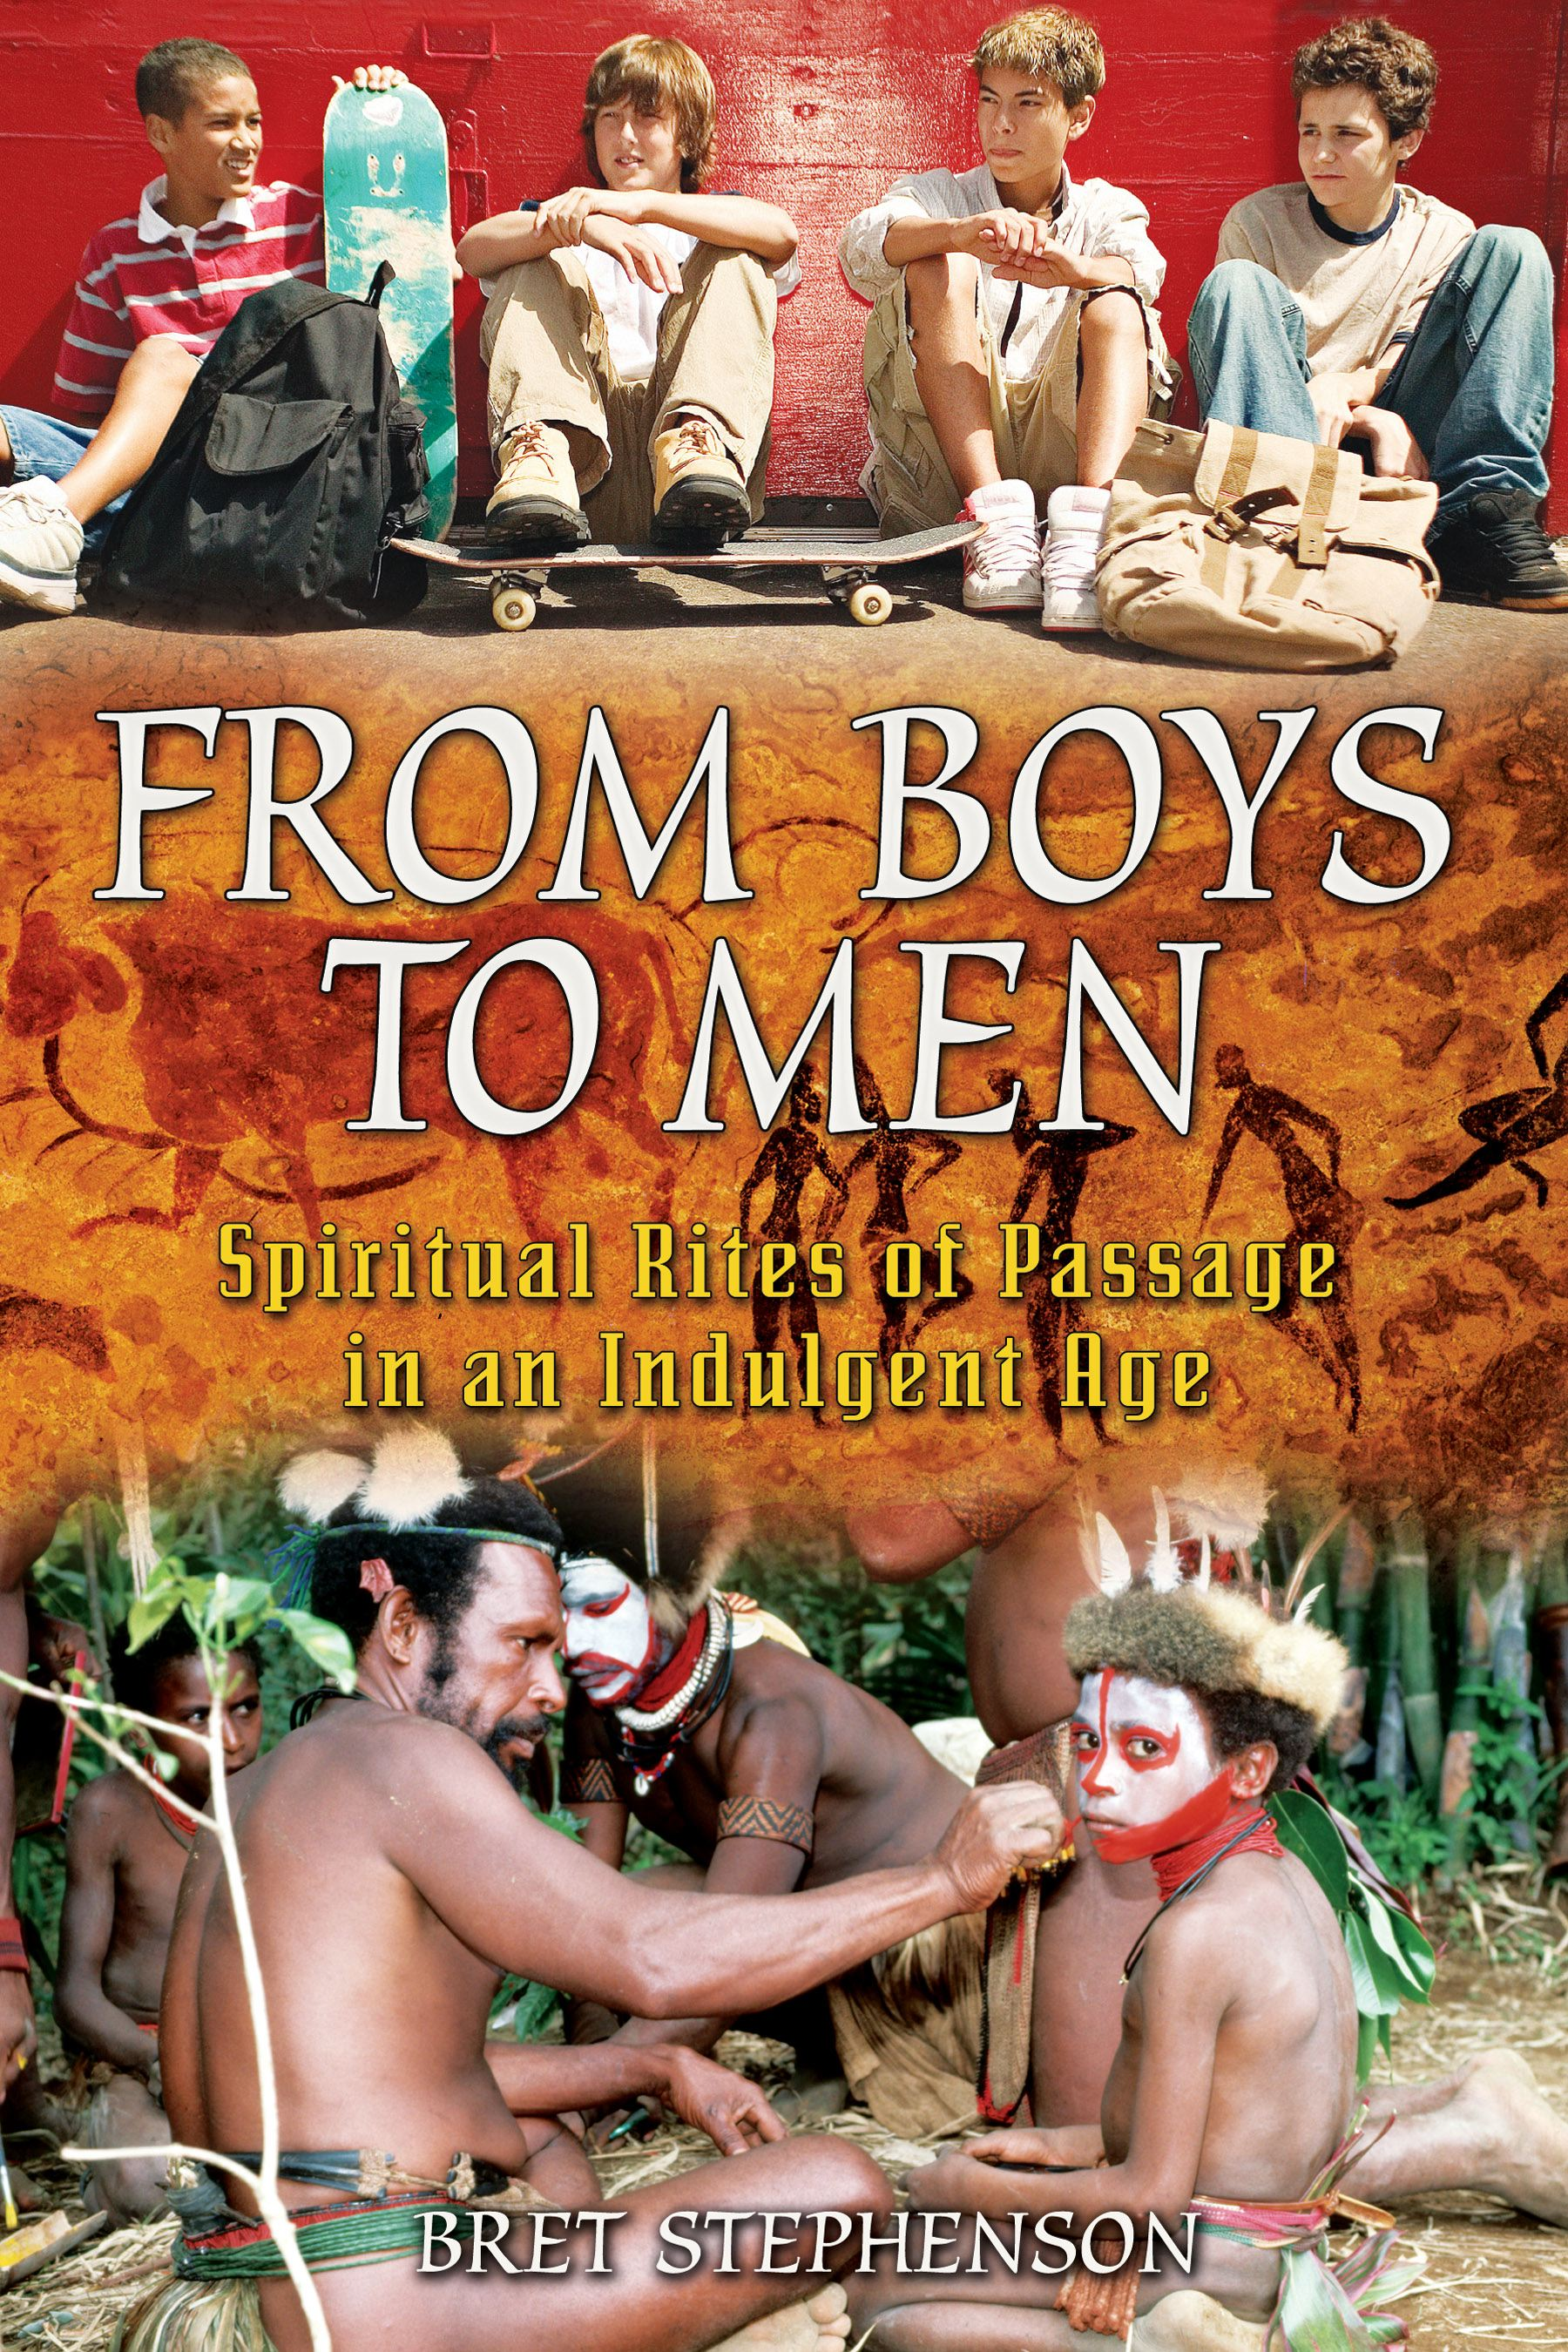 From boys to men 9781594771408 hr